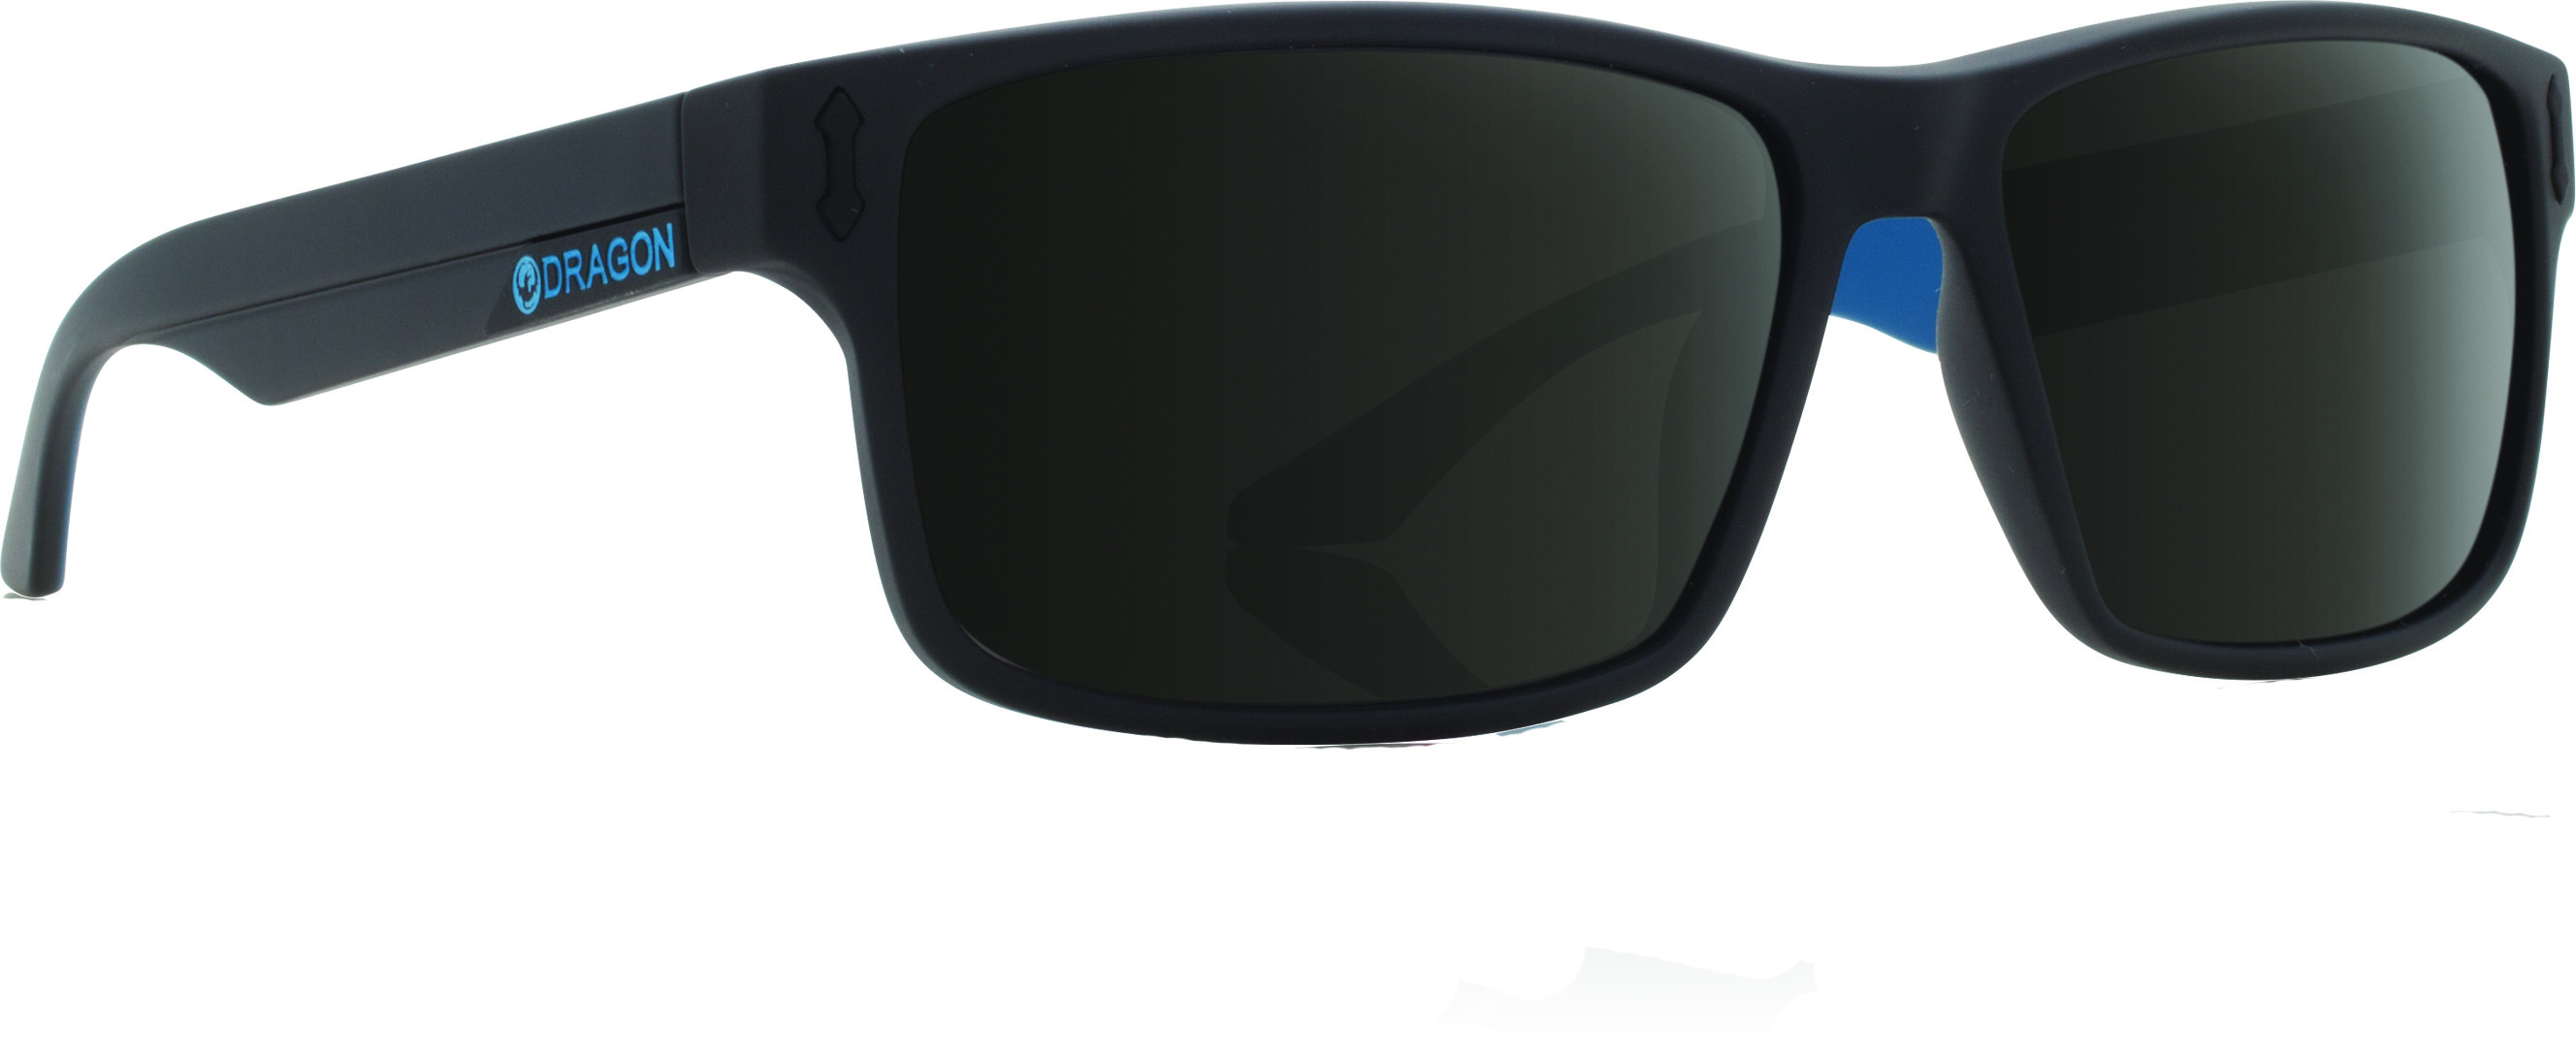 Count Sunglasses Matte Black W/Blue Lens